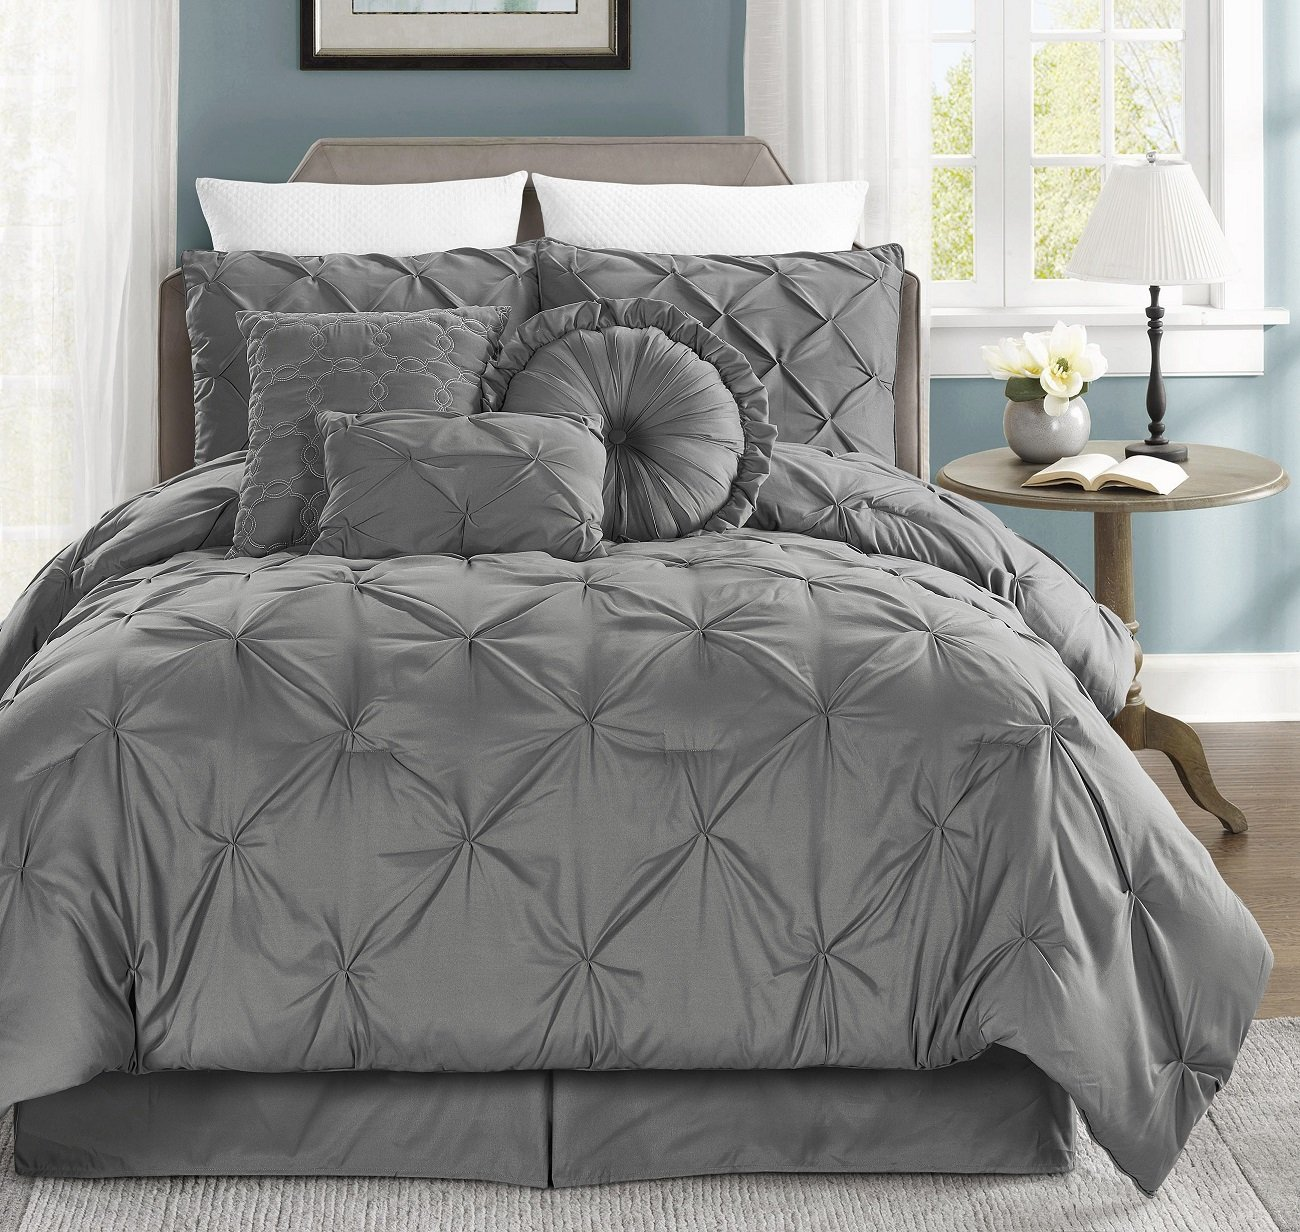 Chezmoi Collection Sydney 7-piece Pintuck Bedding Comforter Set (Queen, Gray